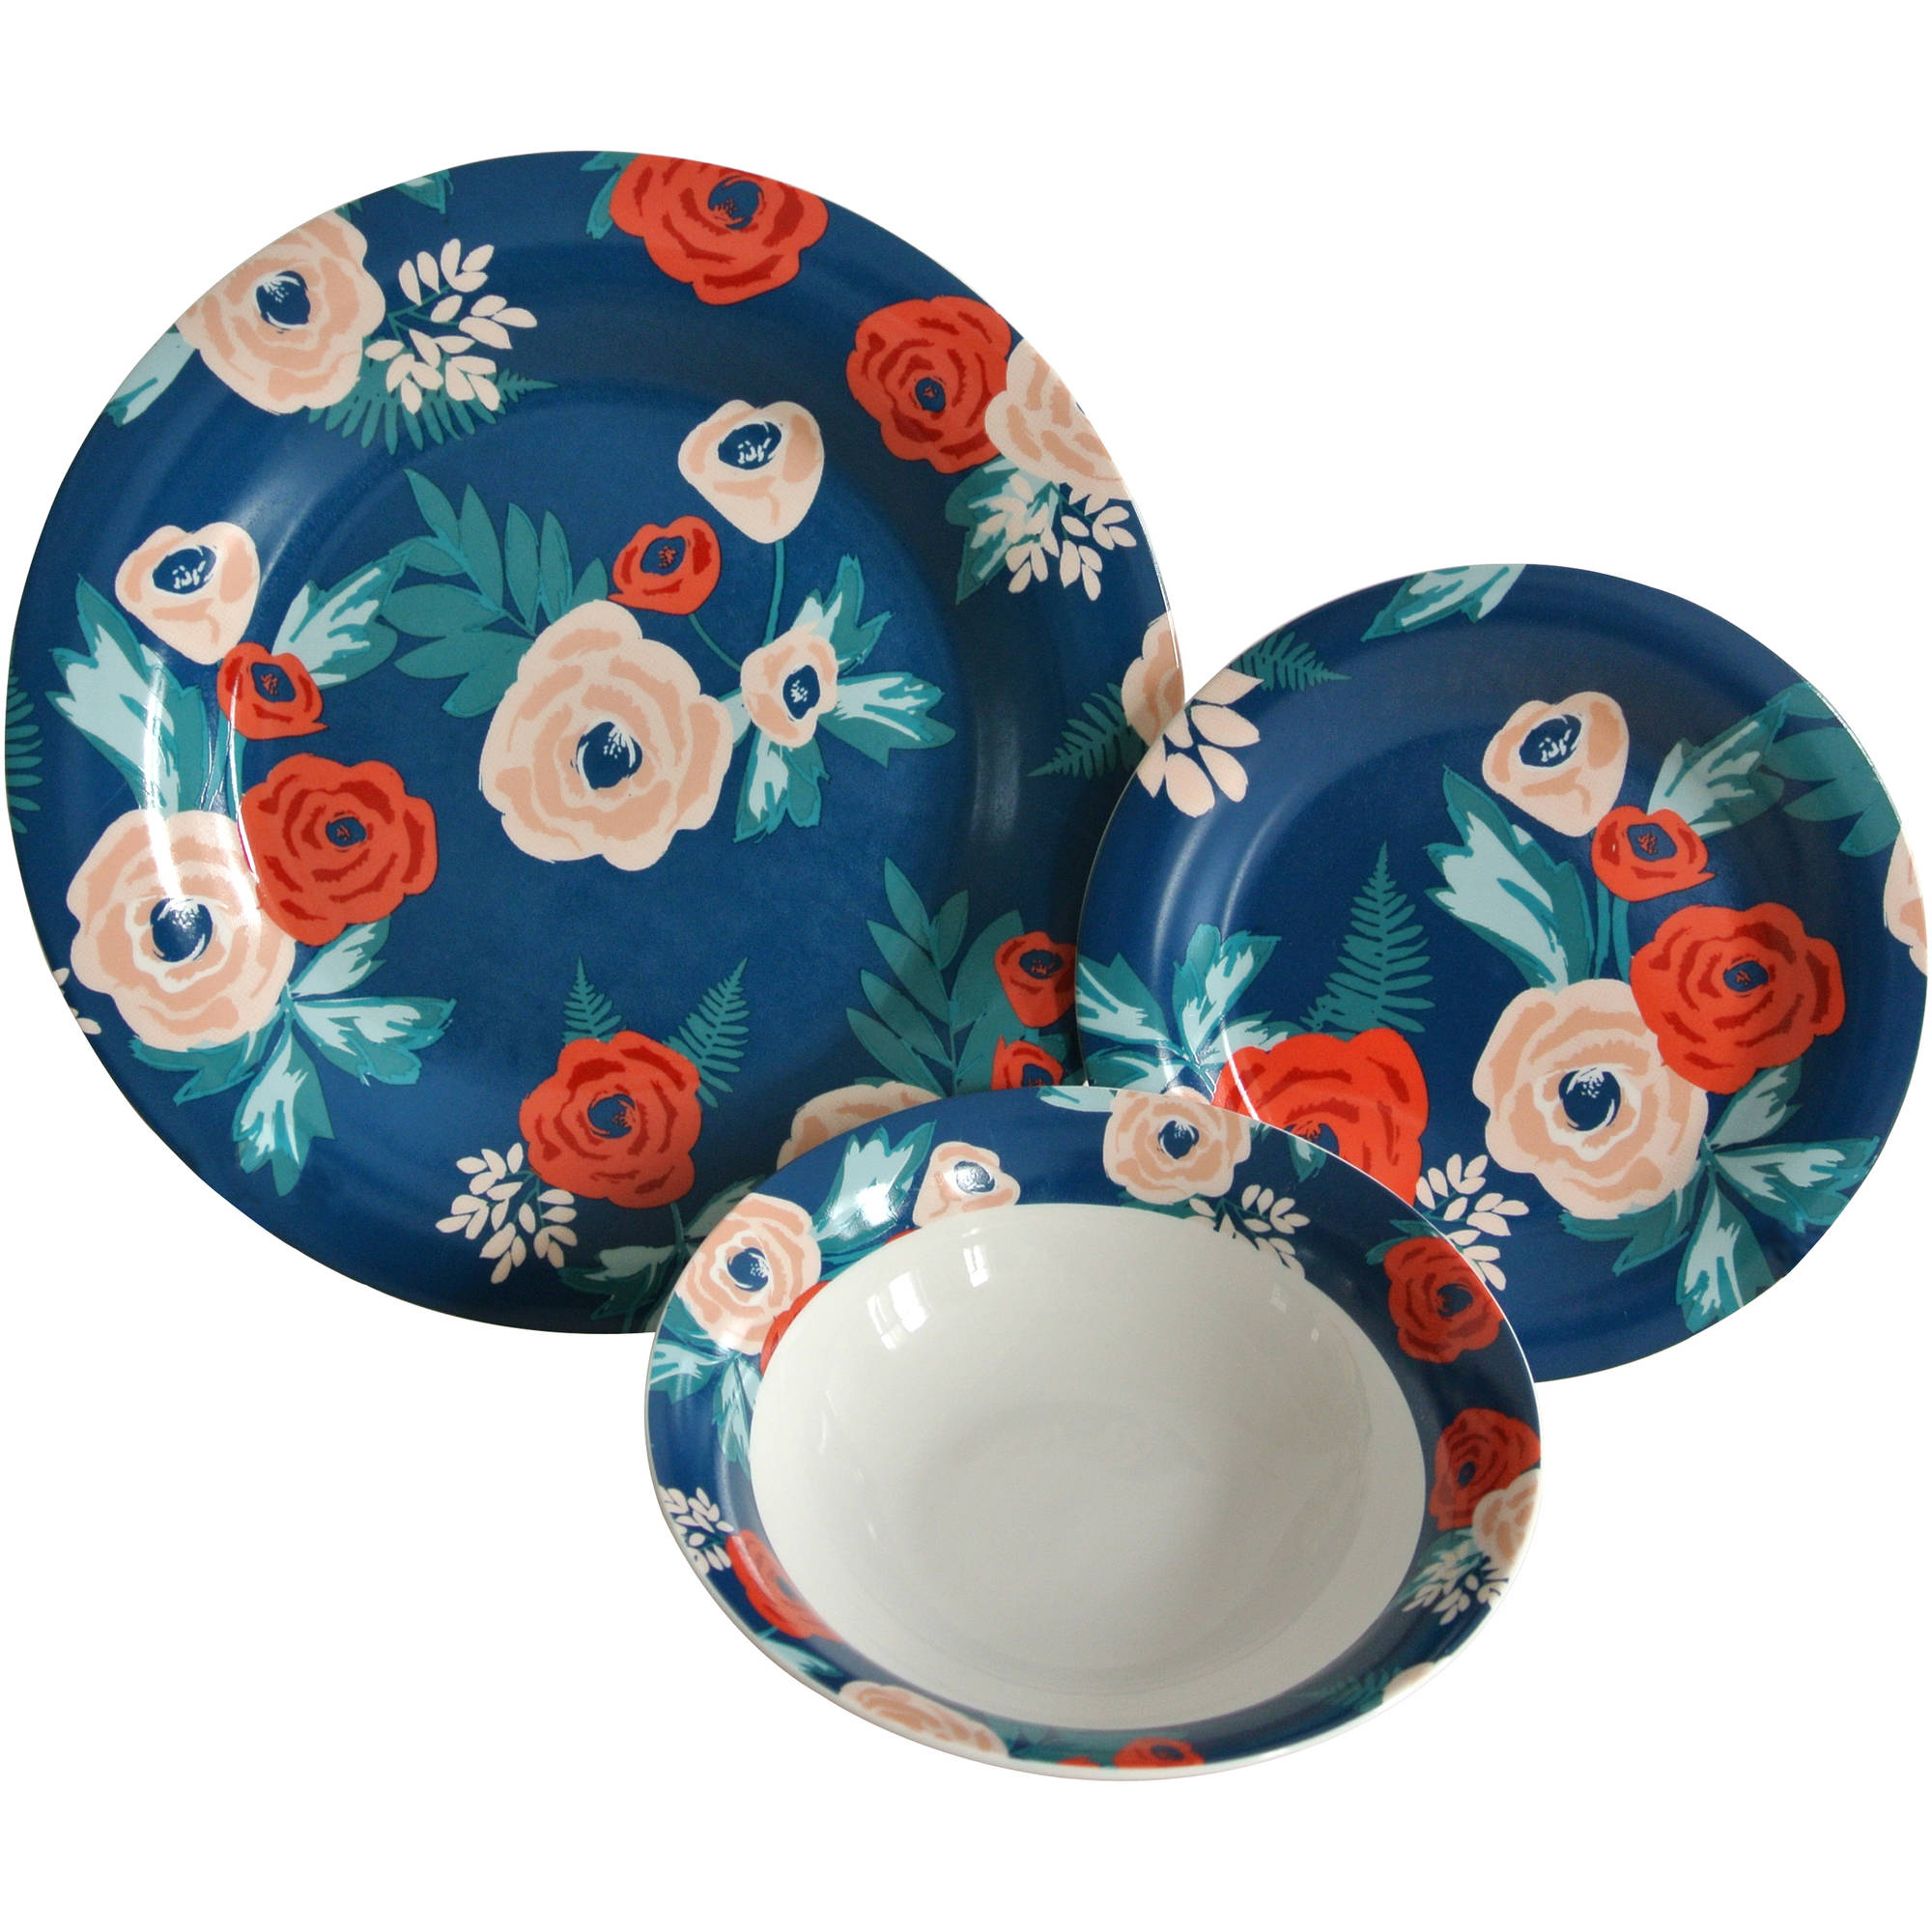 Mainstays Navy Floral 12-Piece Stoneware Dinnerware Set